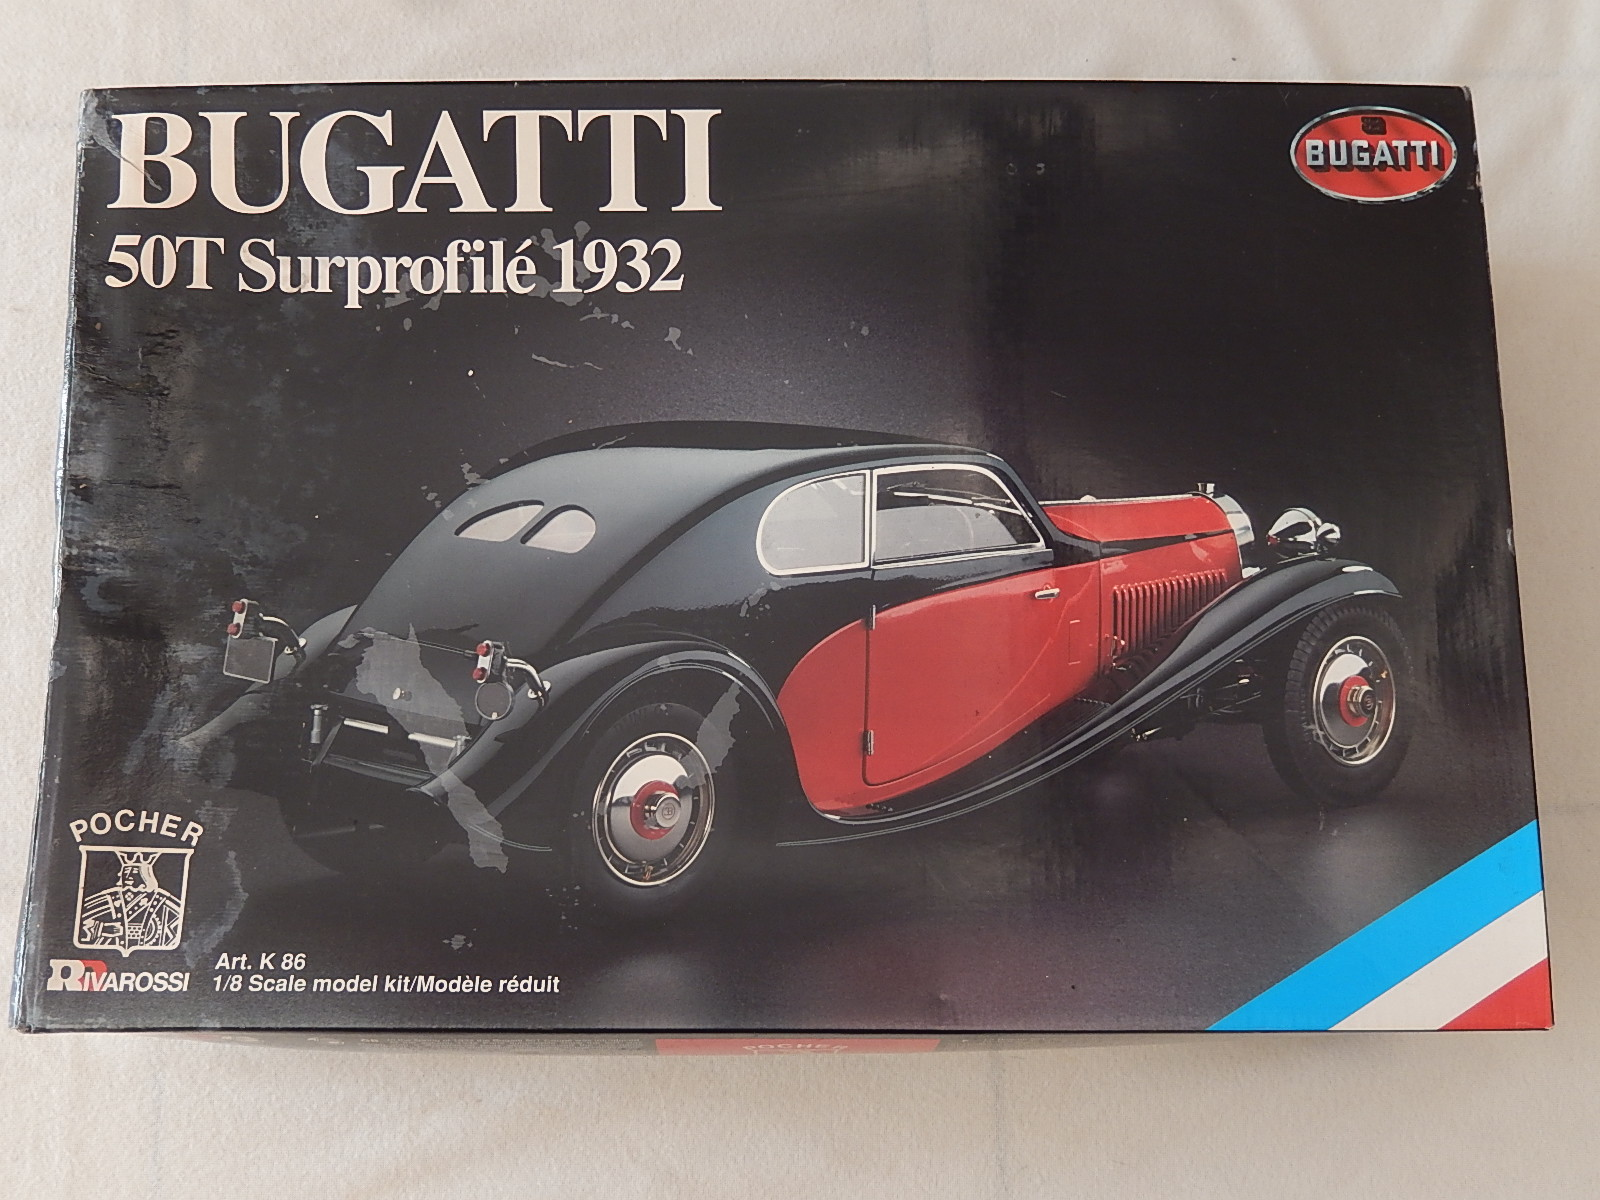 Pocher : Kit Bugatti T50 superprofile 1932